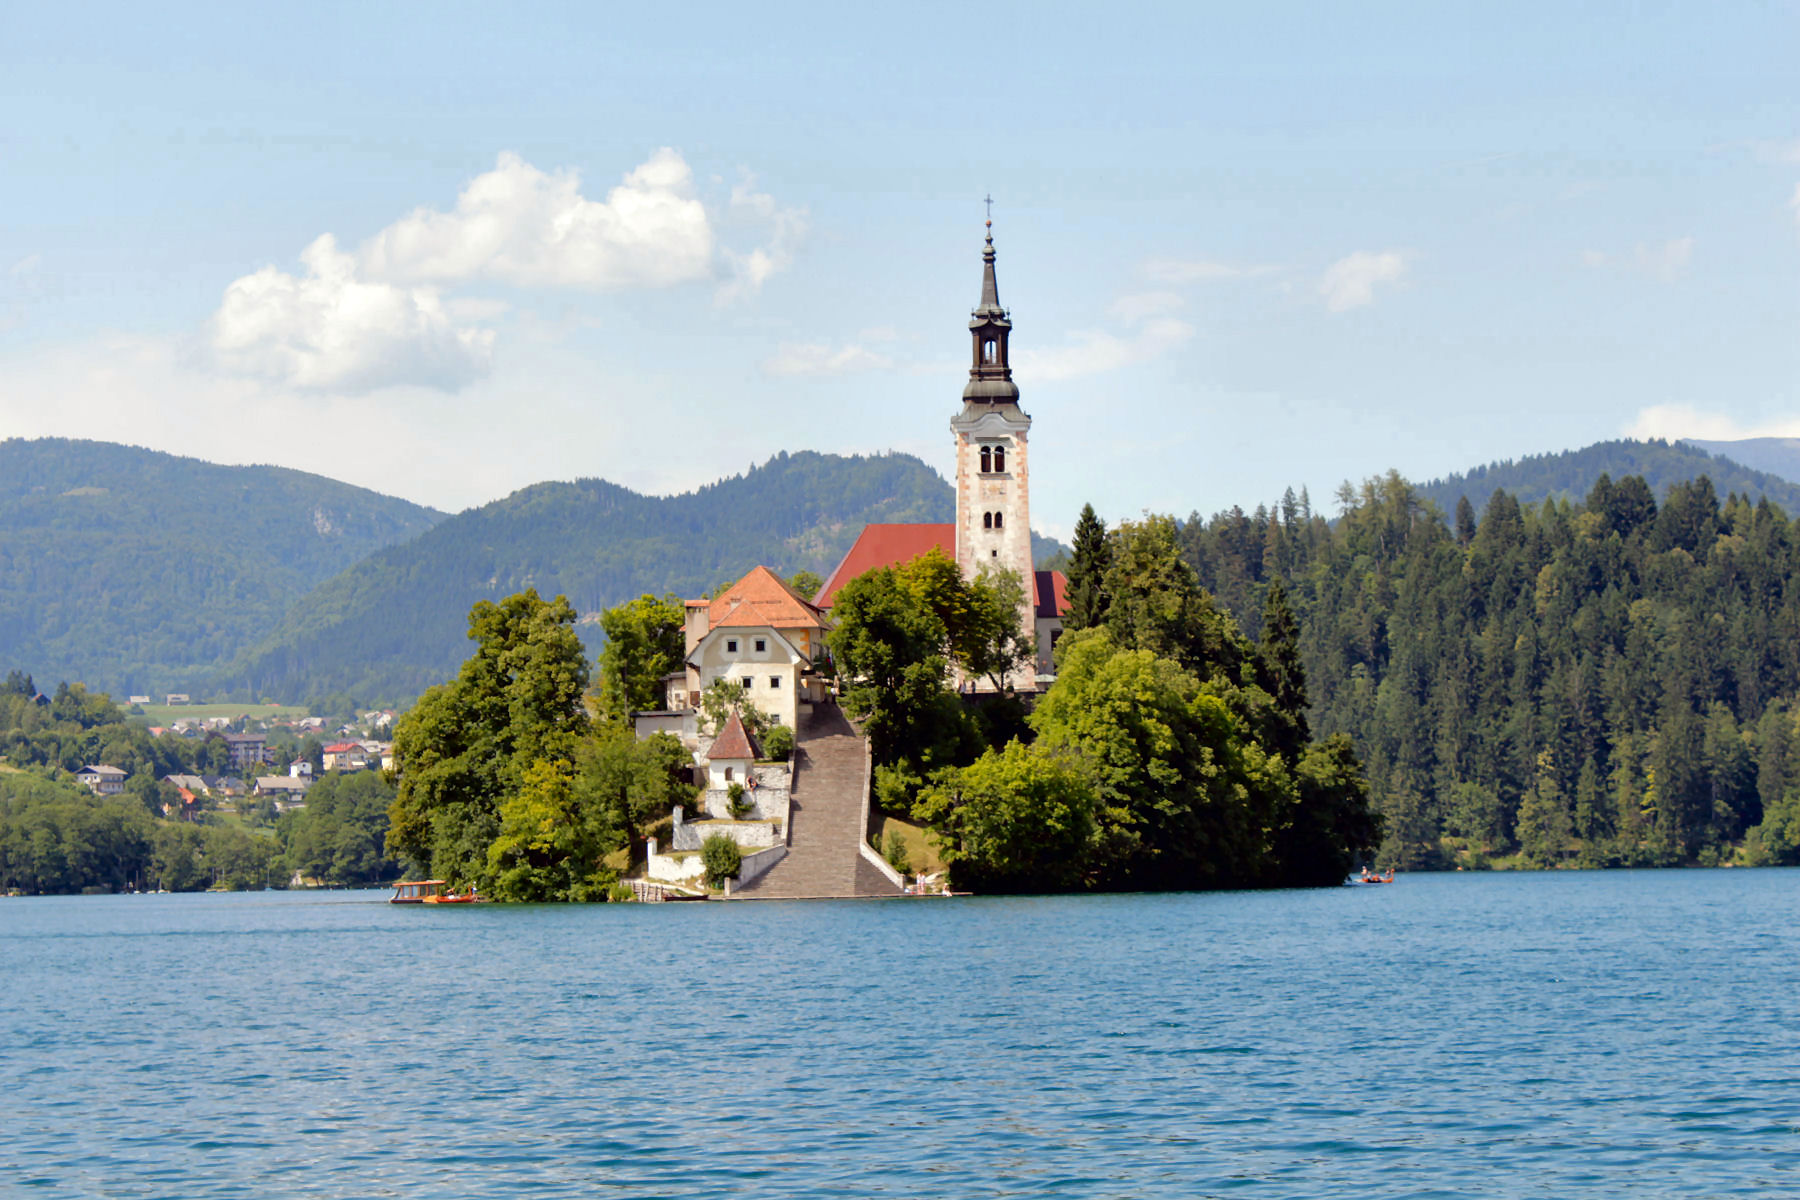 Picture-postcard island with its glorious Gothic church in the middle of Lake Bled